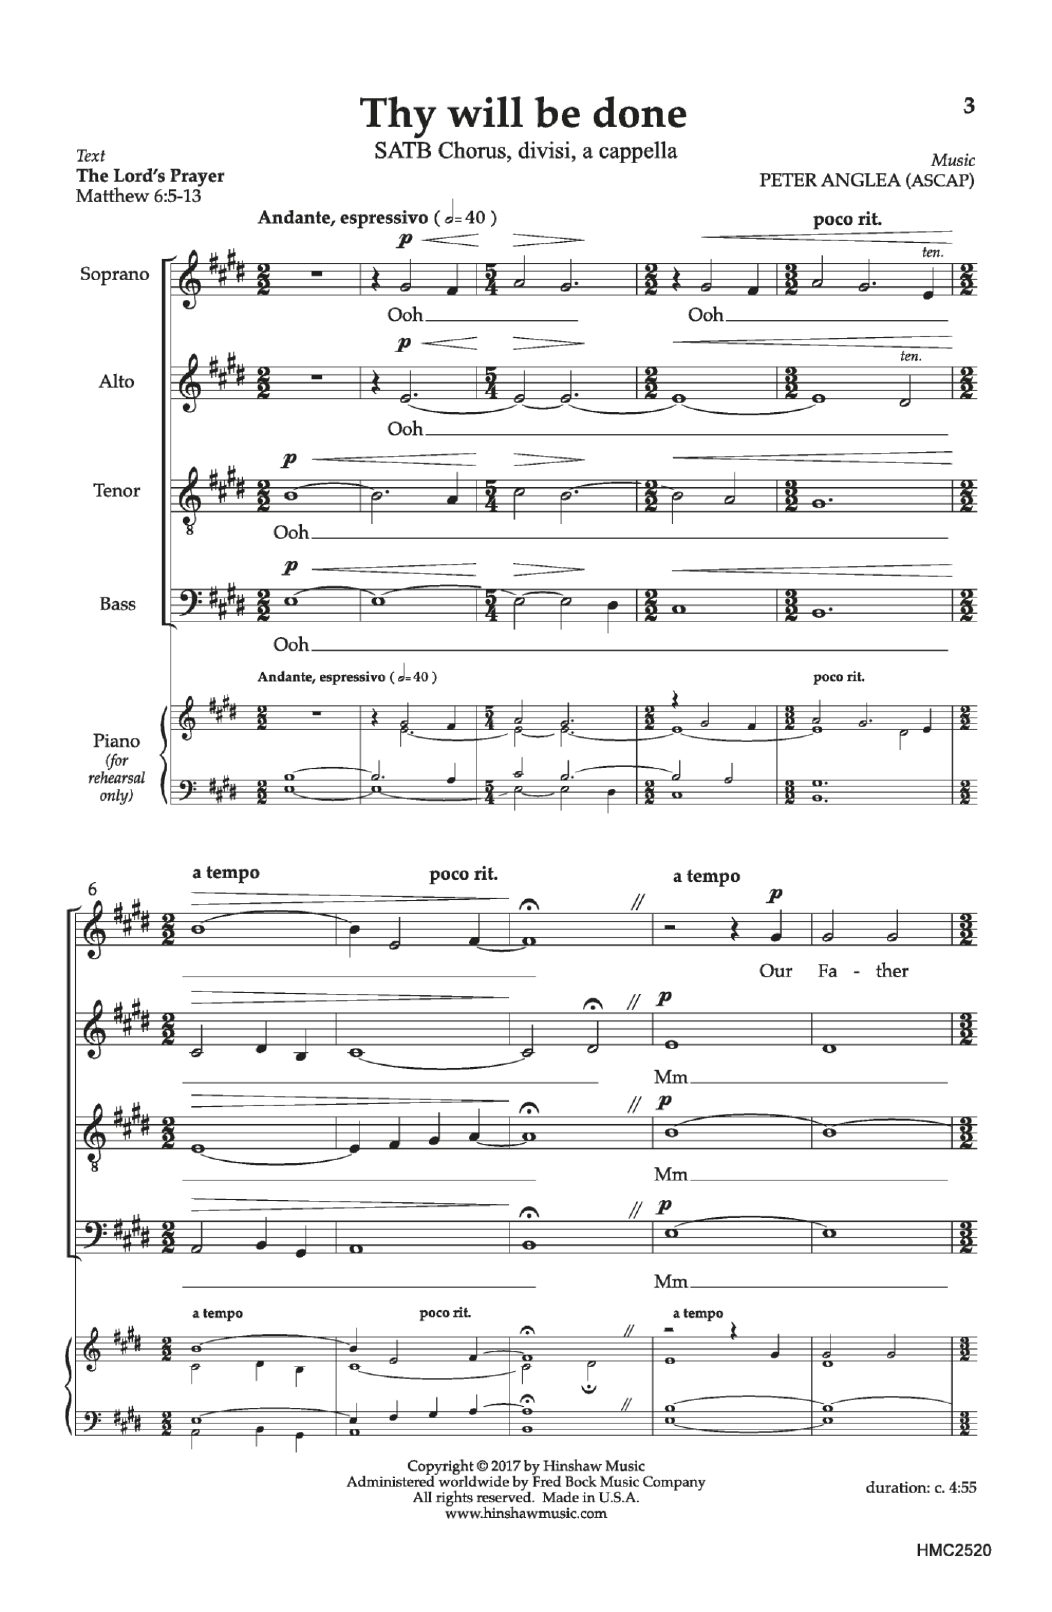 Peter Anglea Thy Will Be Done sheet music notes and chords. Download Printable PDF.